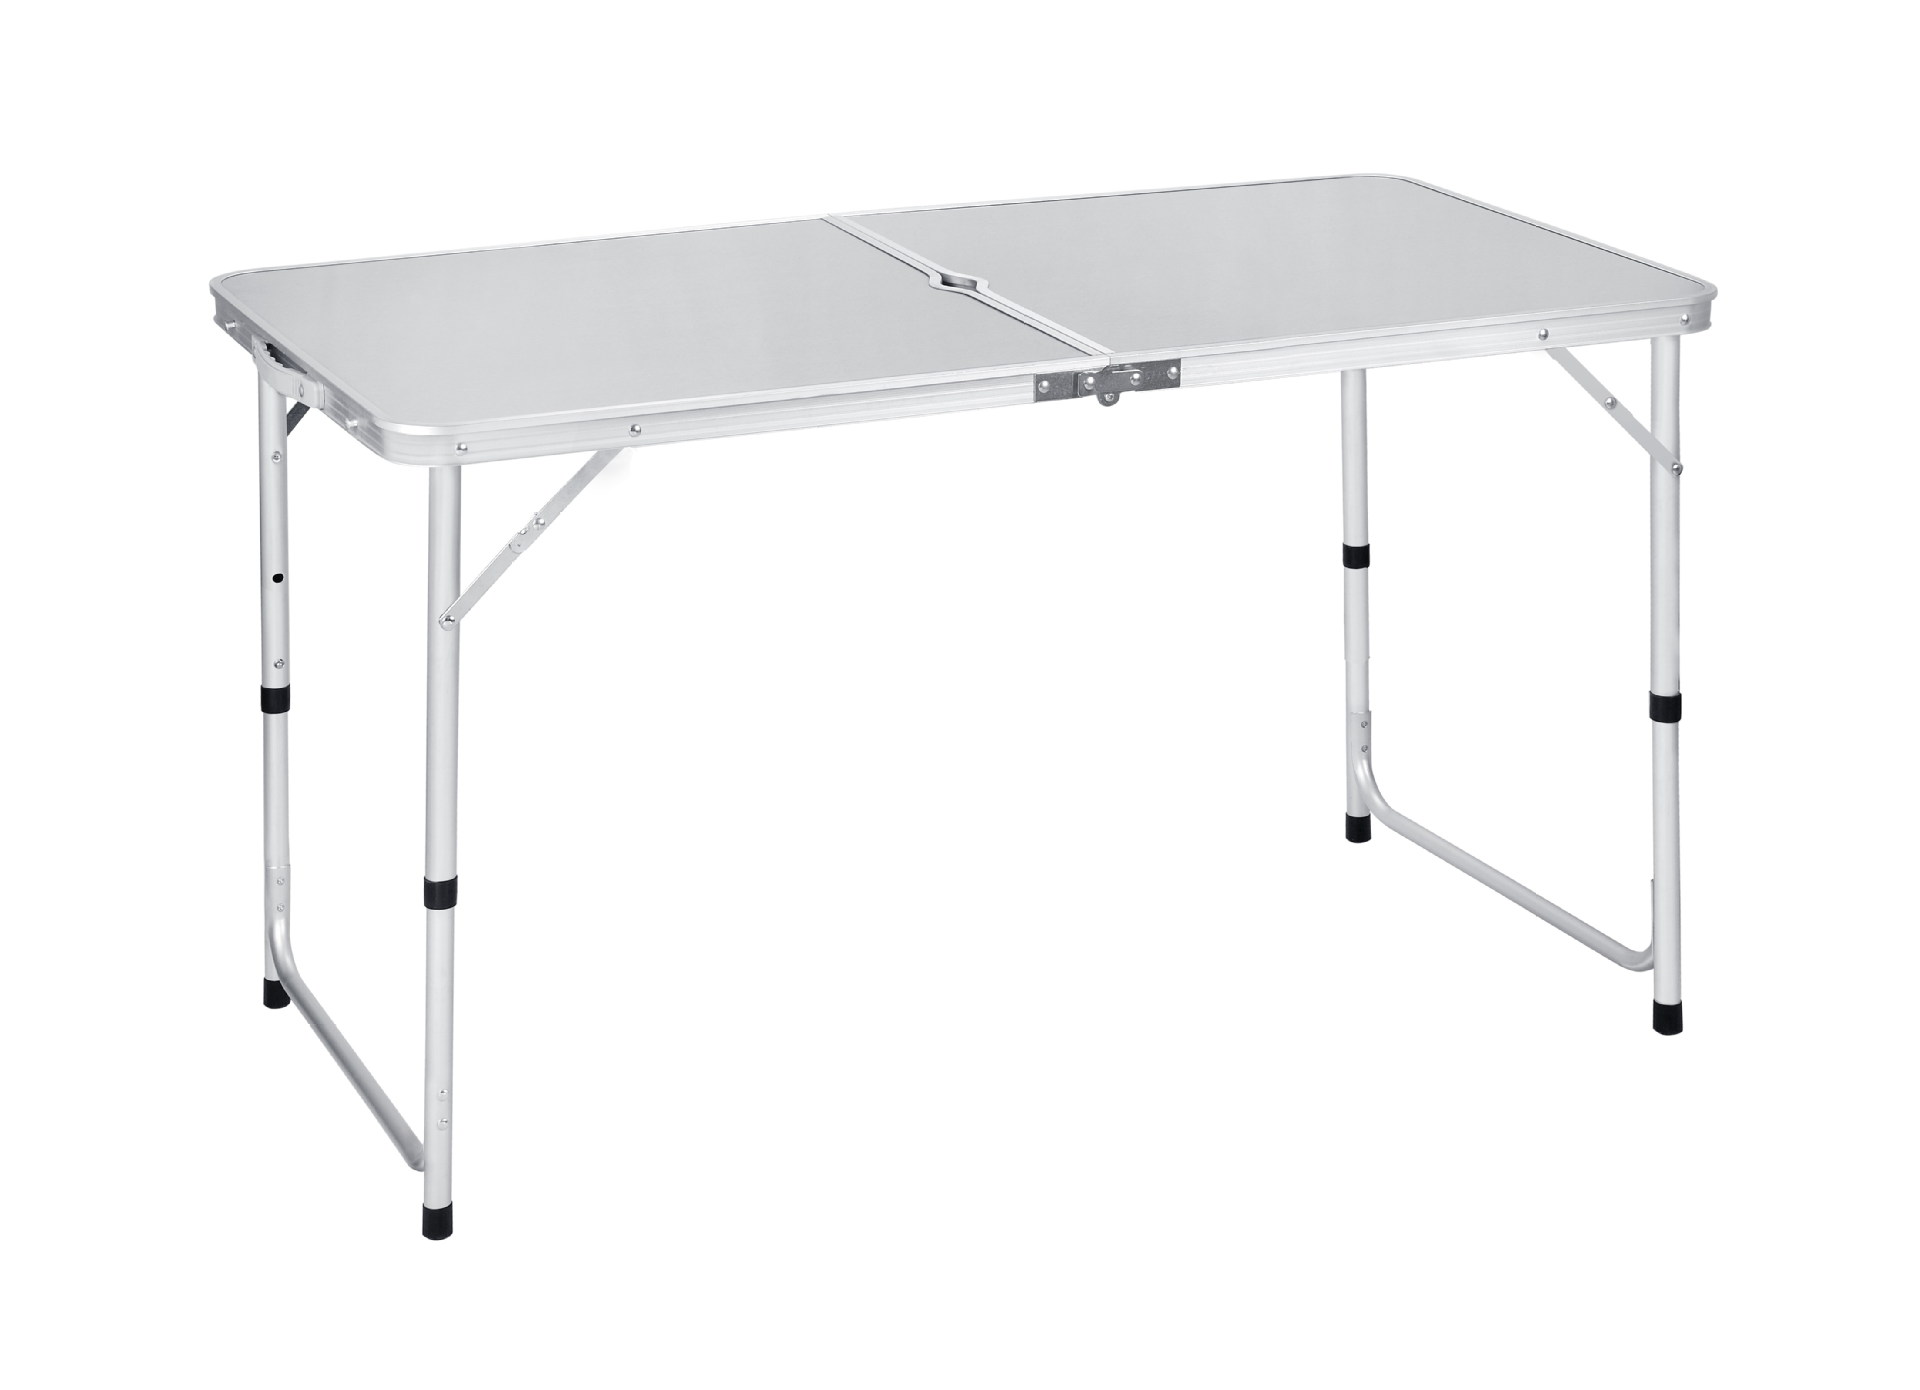 120x60x70cm Aluminum Alloy Portable Foldable Folding Table Desk Outdoor Camping Tables Height Adjustable Portable Picnic Table